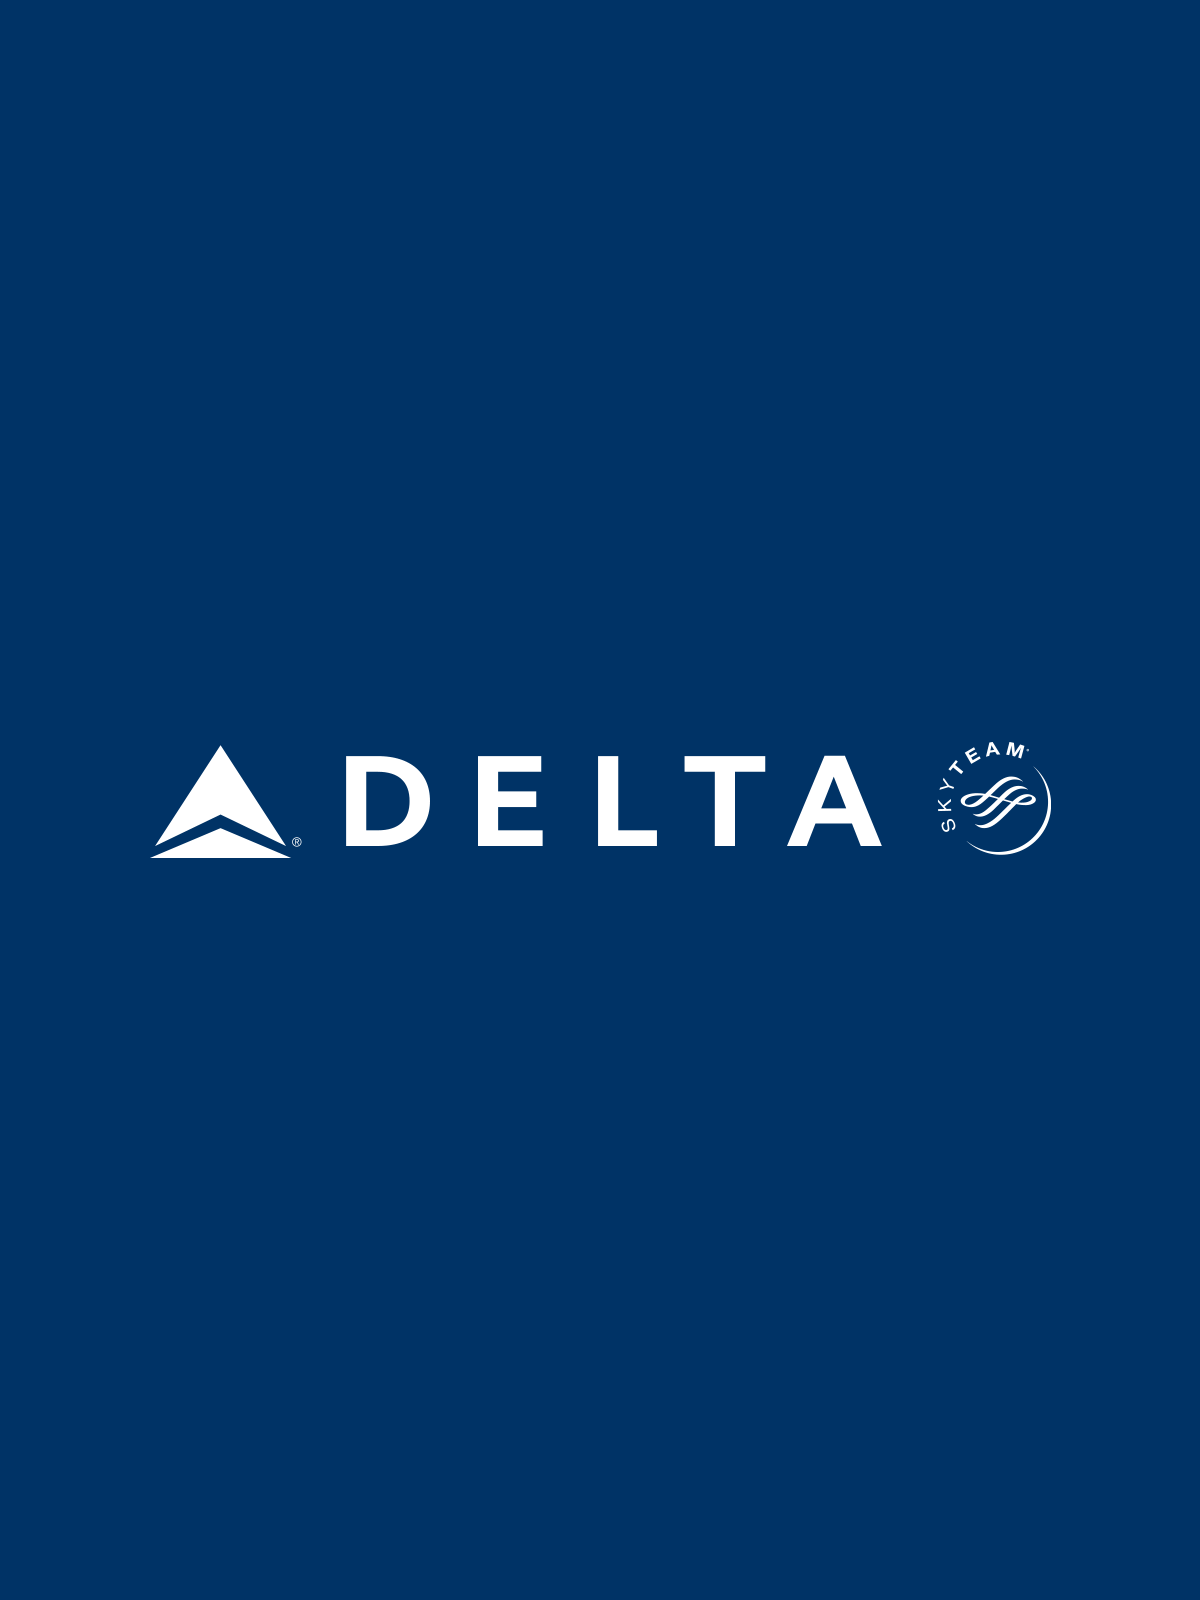 The Delta Foundation